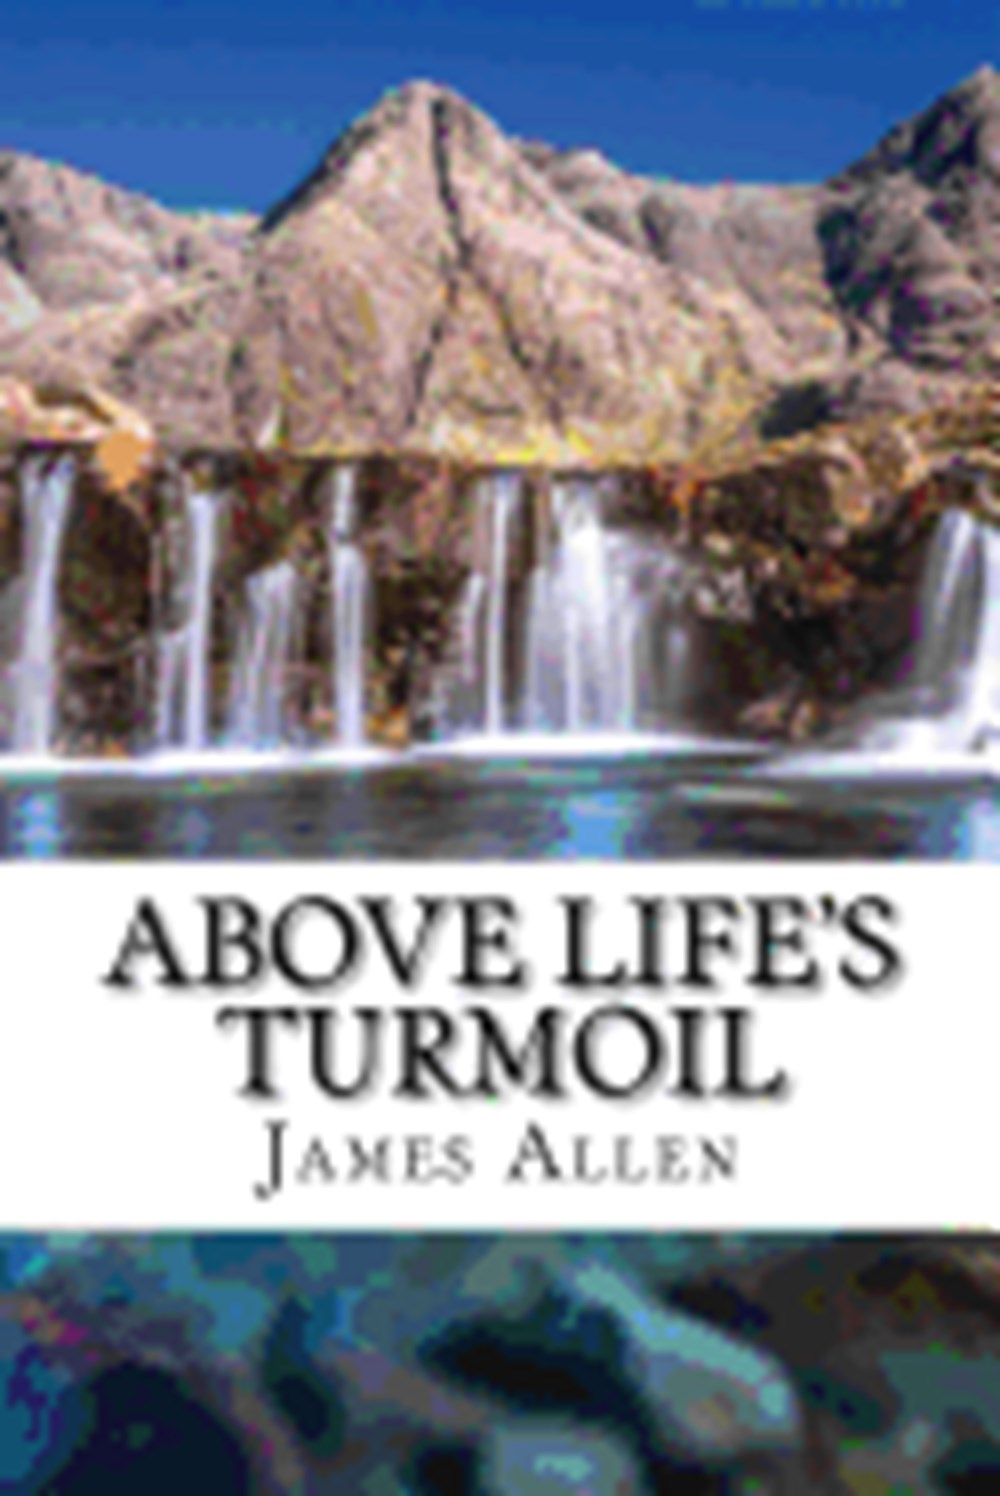 Above Life's Turmoil (annotated with Biography about James Allen)